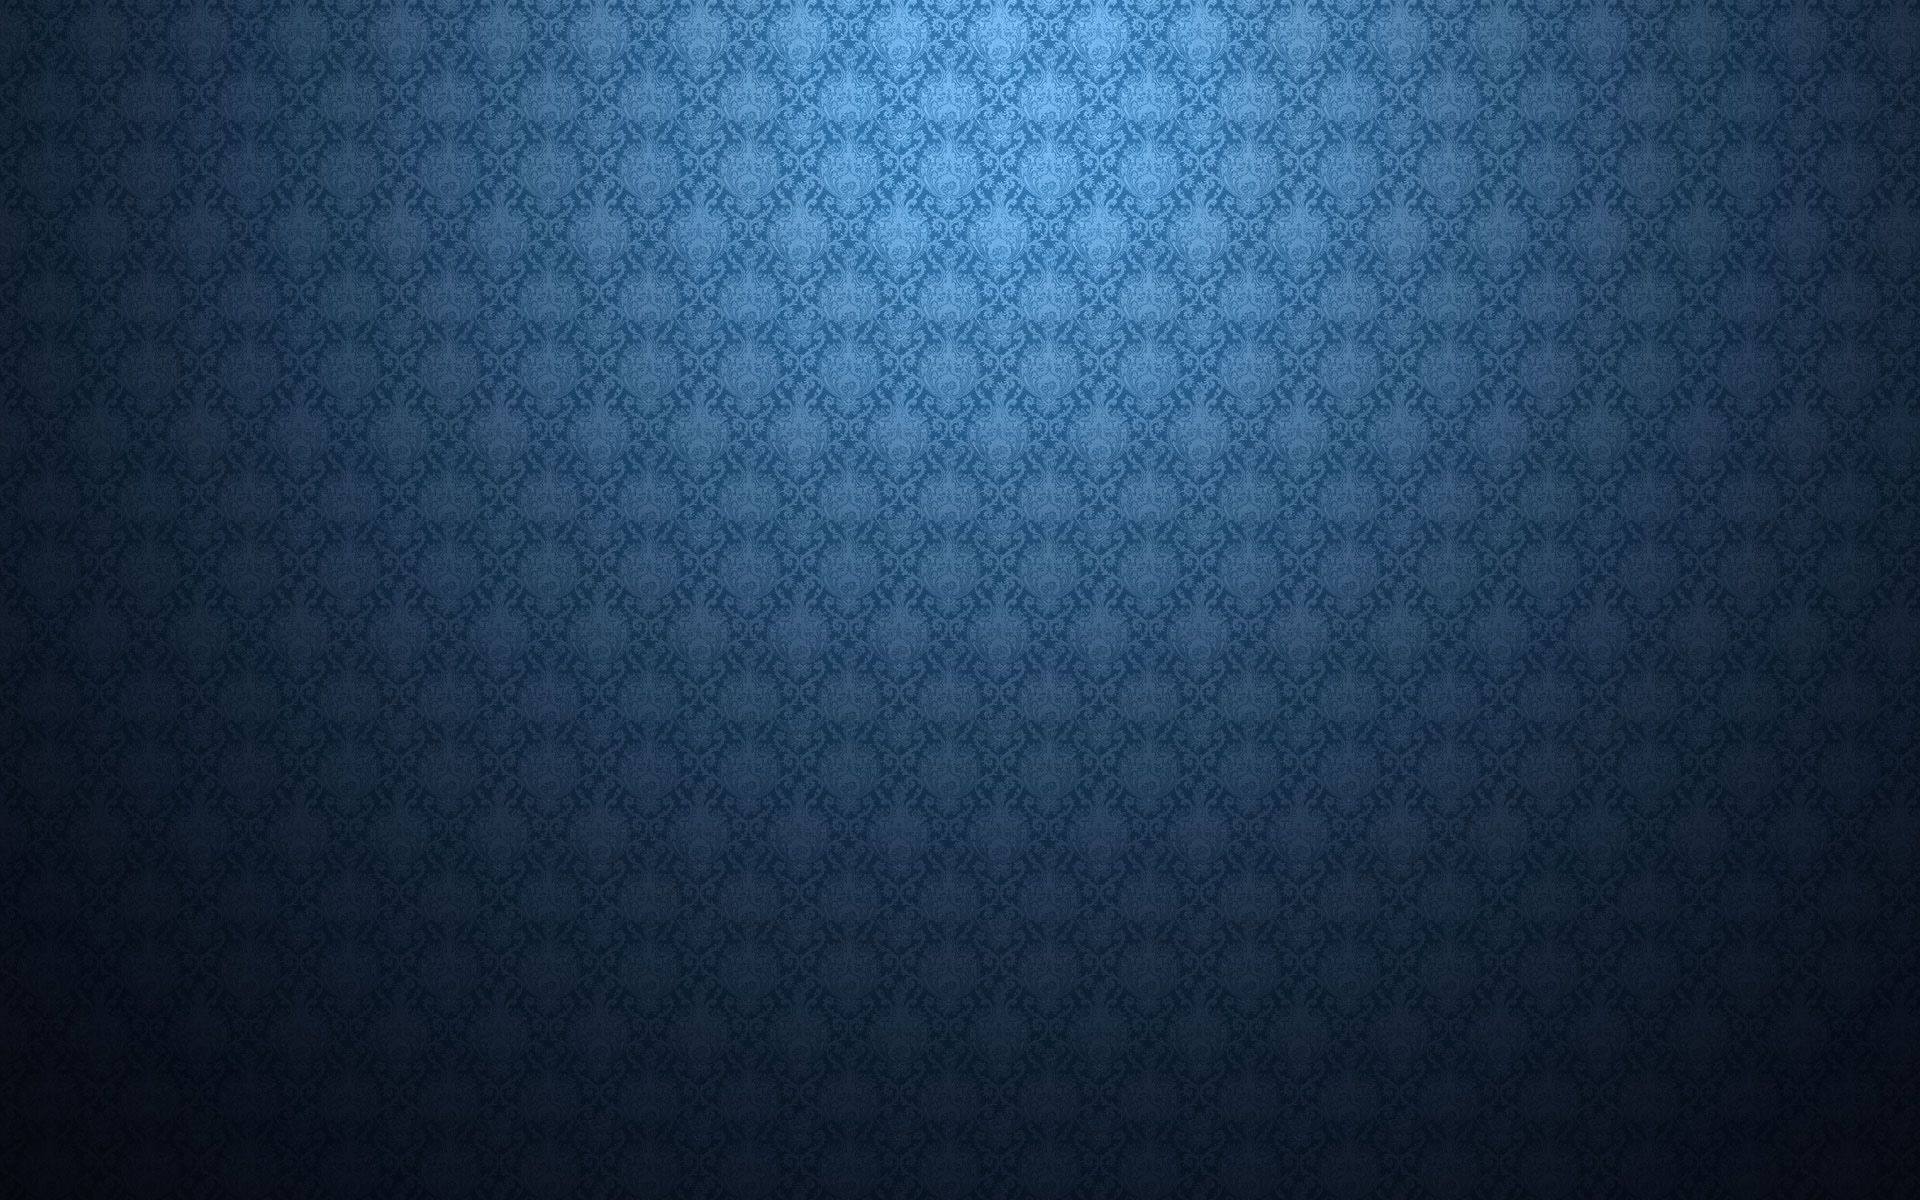 Regal Blue Pattern 1920x1200 Jpg 1 920 1 200 Pixels Blue Wallpapers Royal Blue Wallpaper Wallpaper Backgrounds